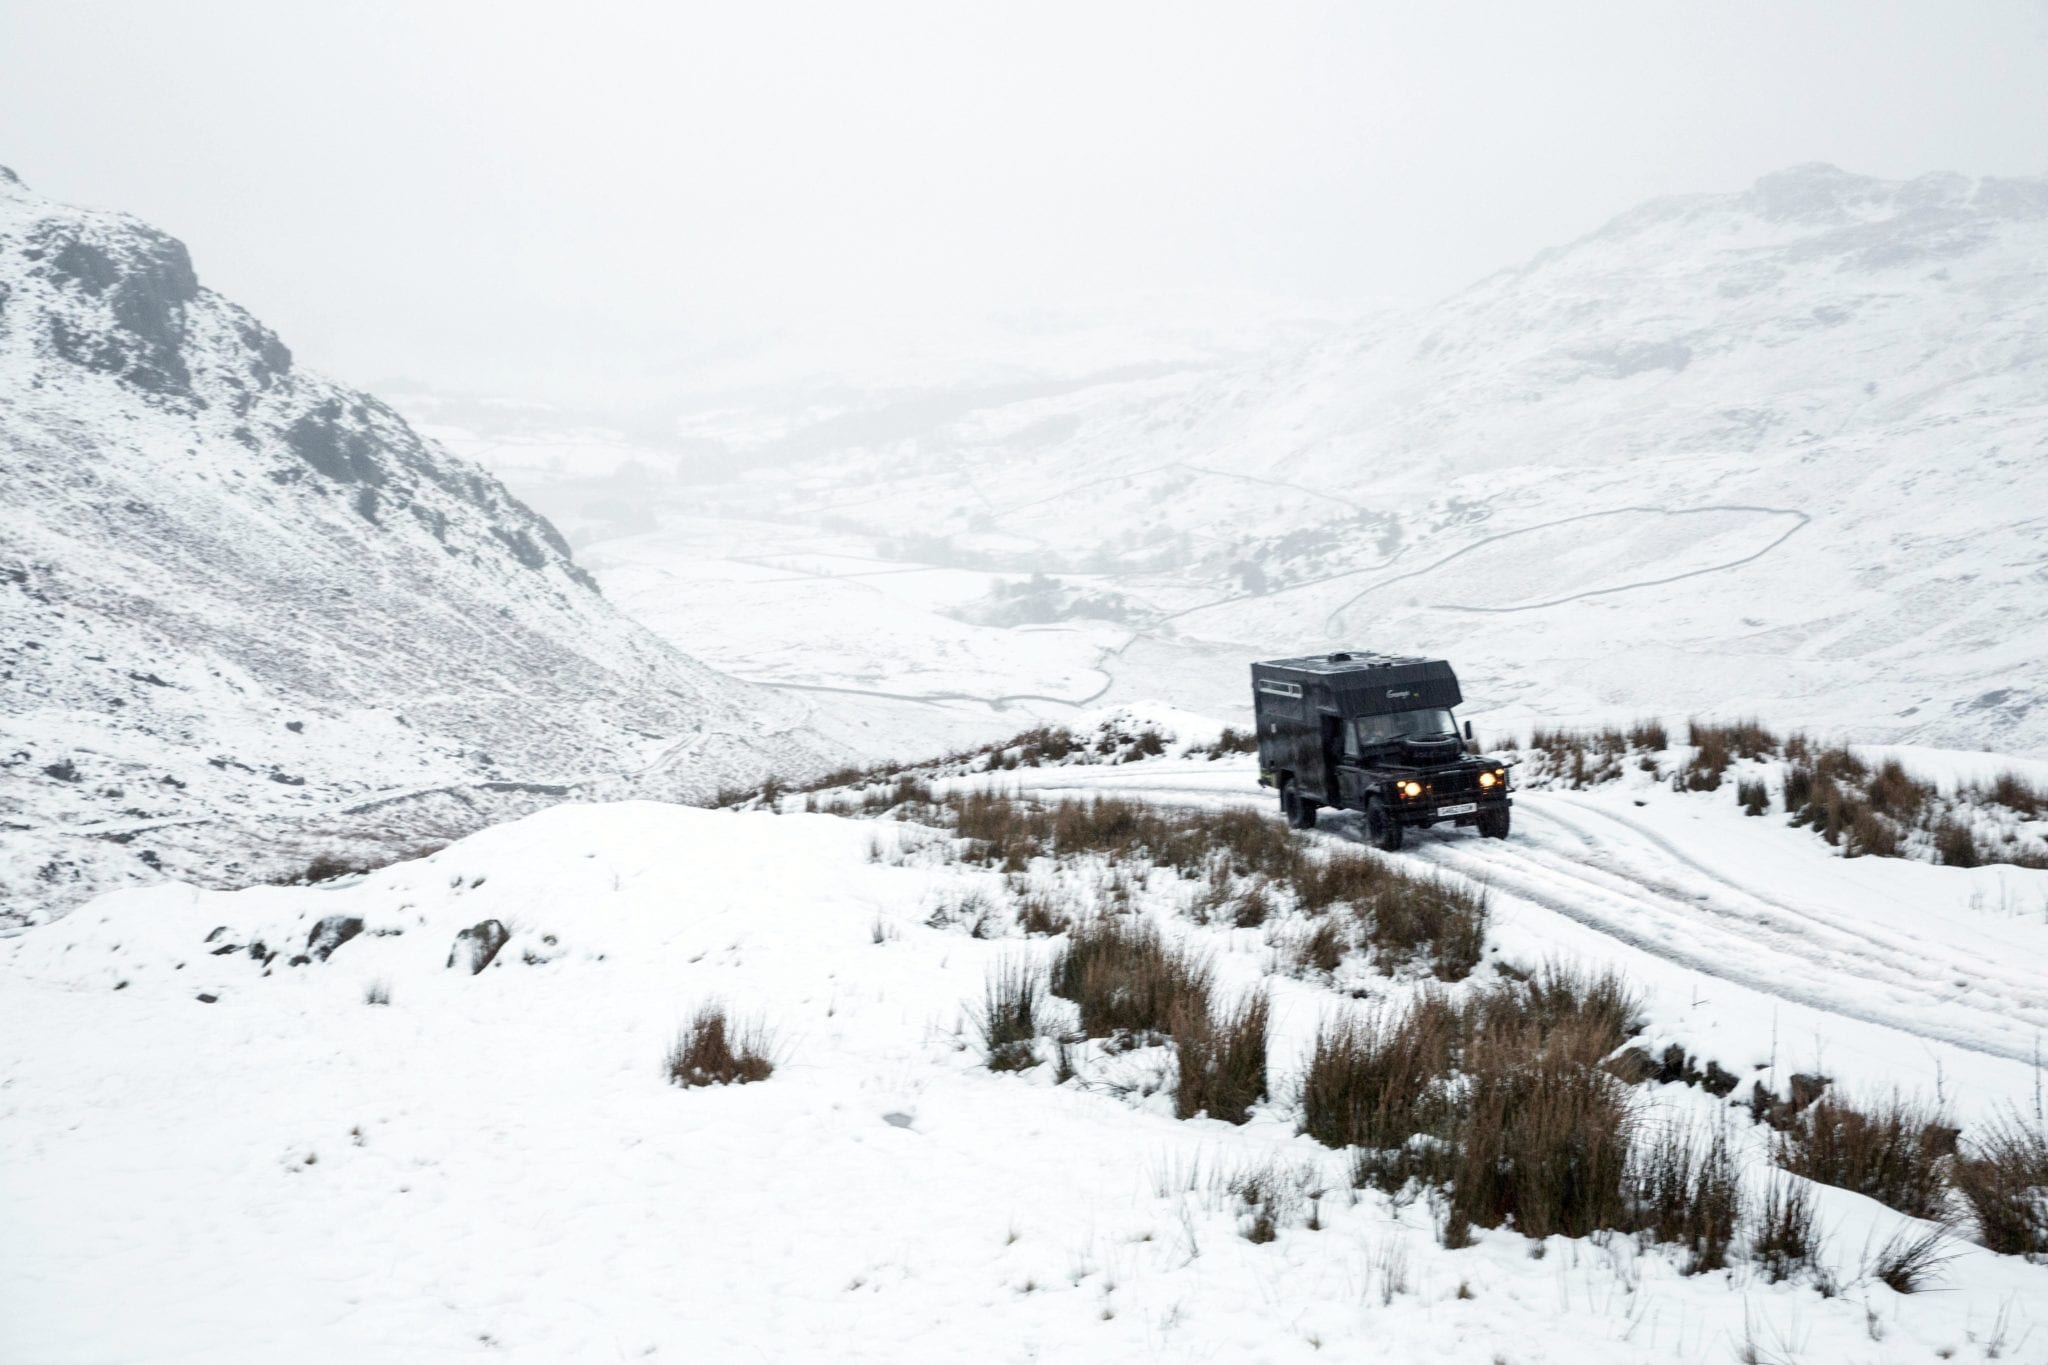 A landrover campervan in the snowy mountains